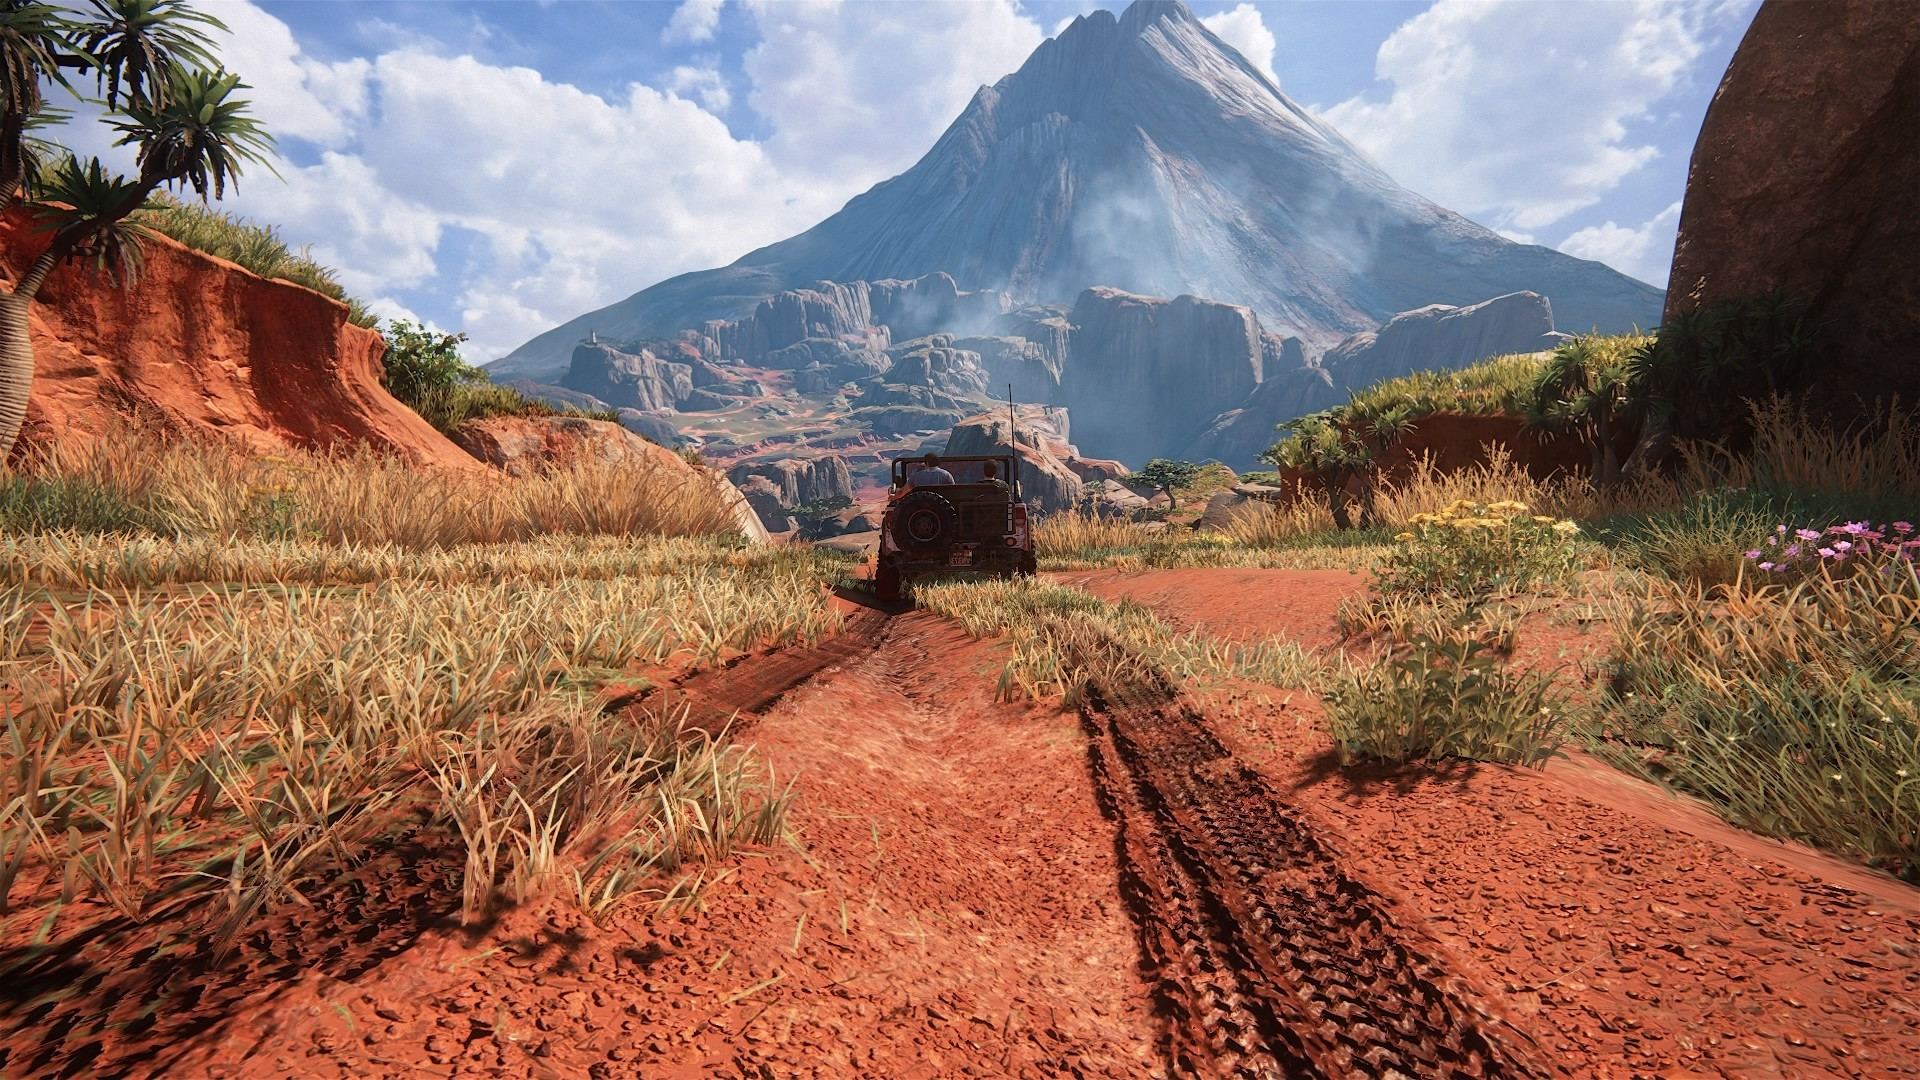 Bing 3d Wallpapers Uncharted 4 A Thiefs End Video Games Playstation 4